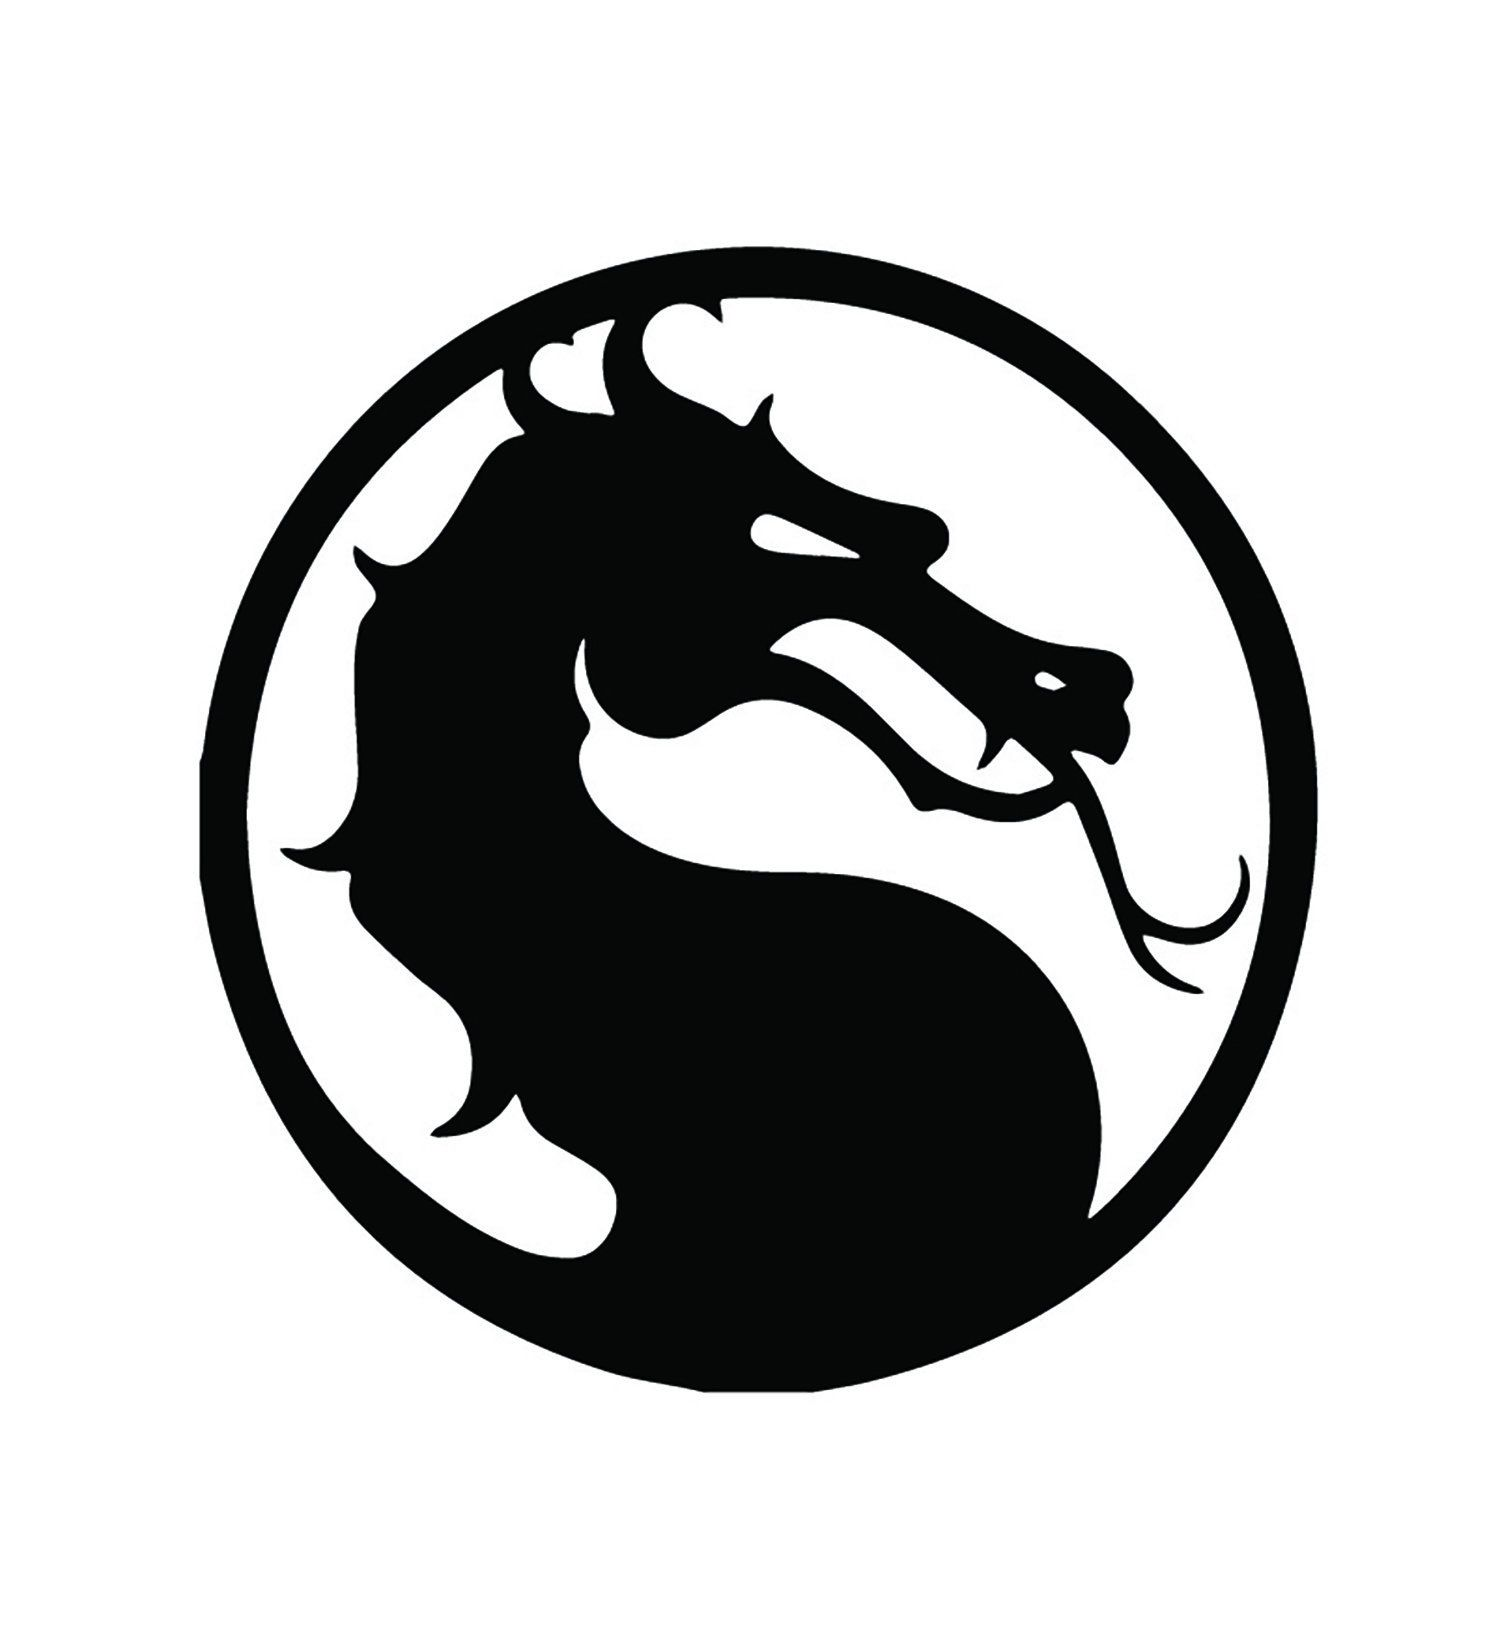 Holographic Mortal Kombat Vinyl Sticker Etsy In 2020 Mortal